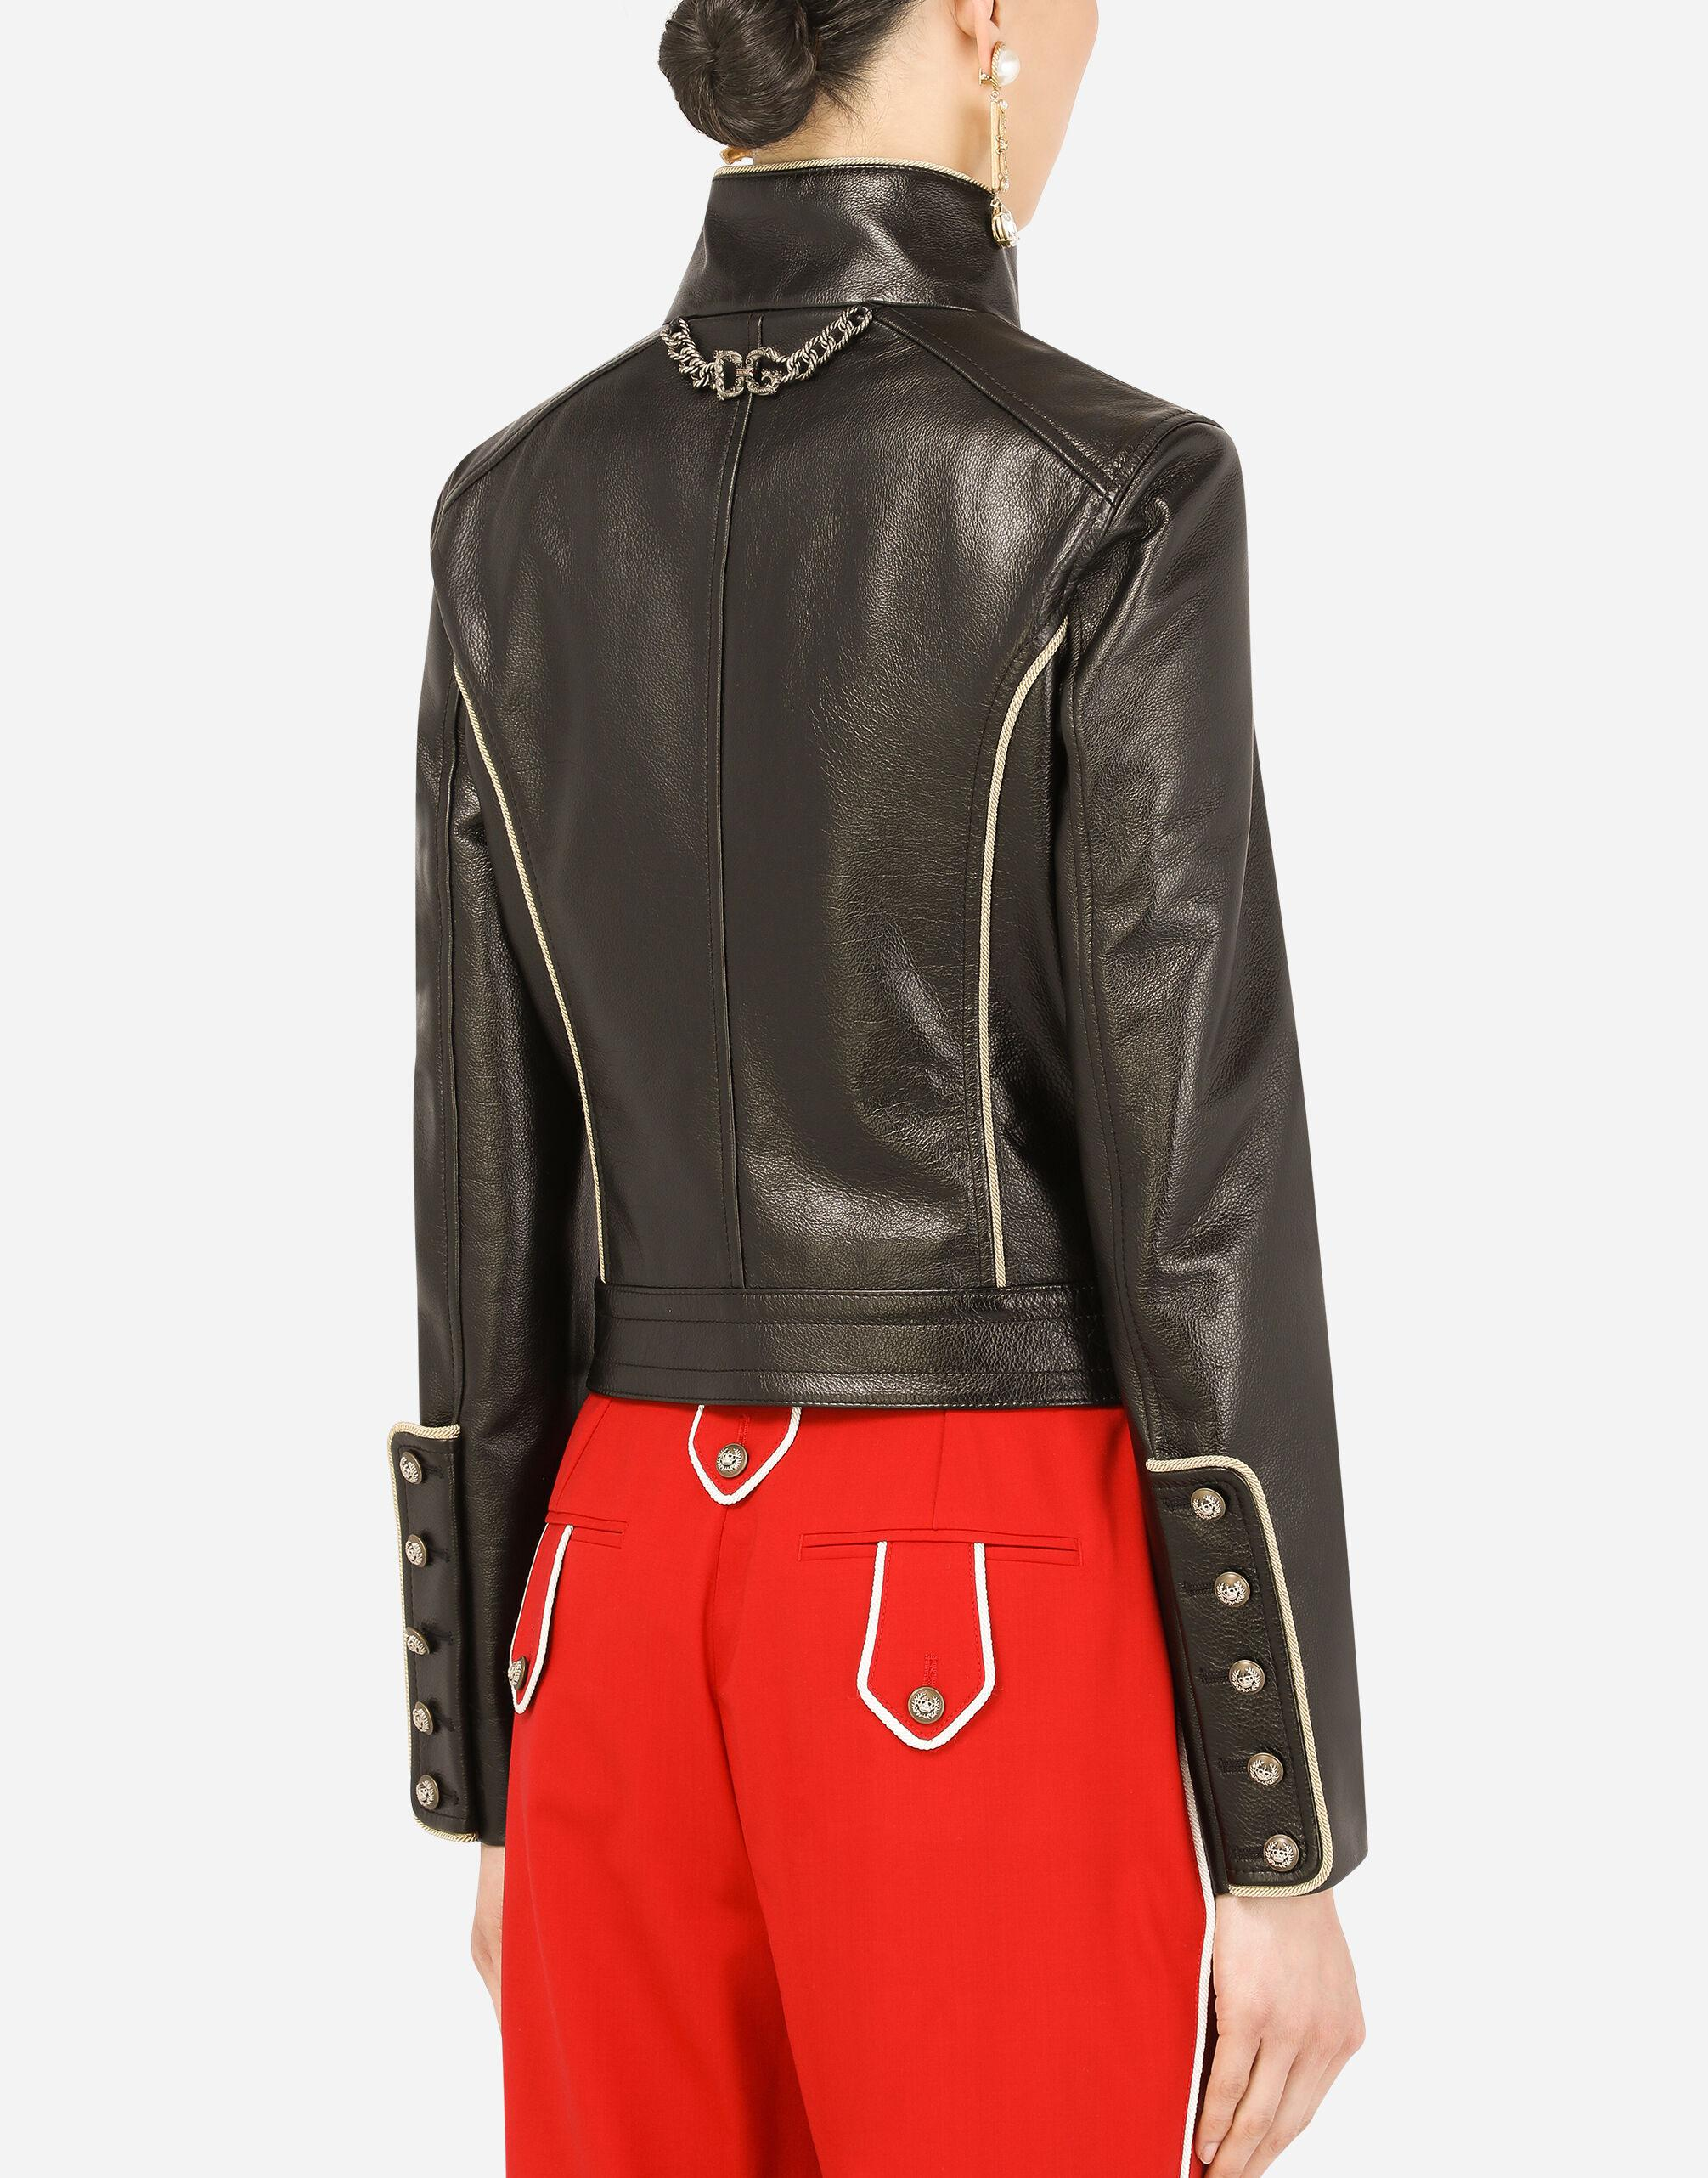 Leather biker jacket with heraldic buttons 3